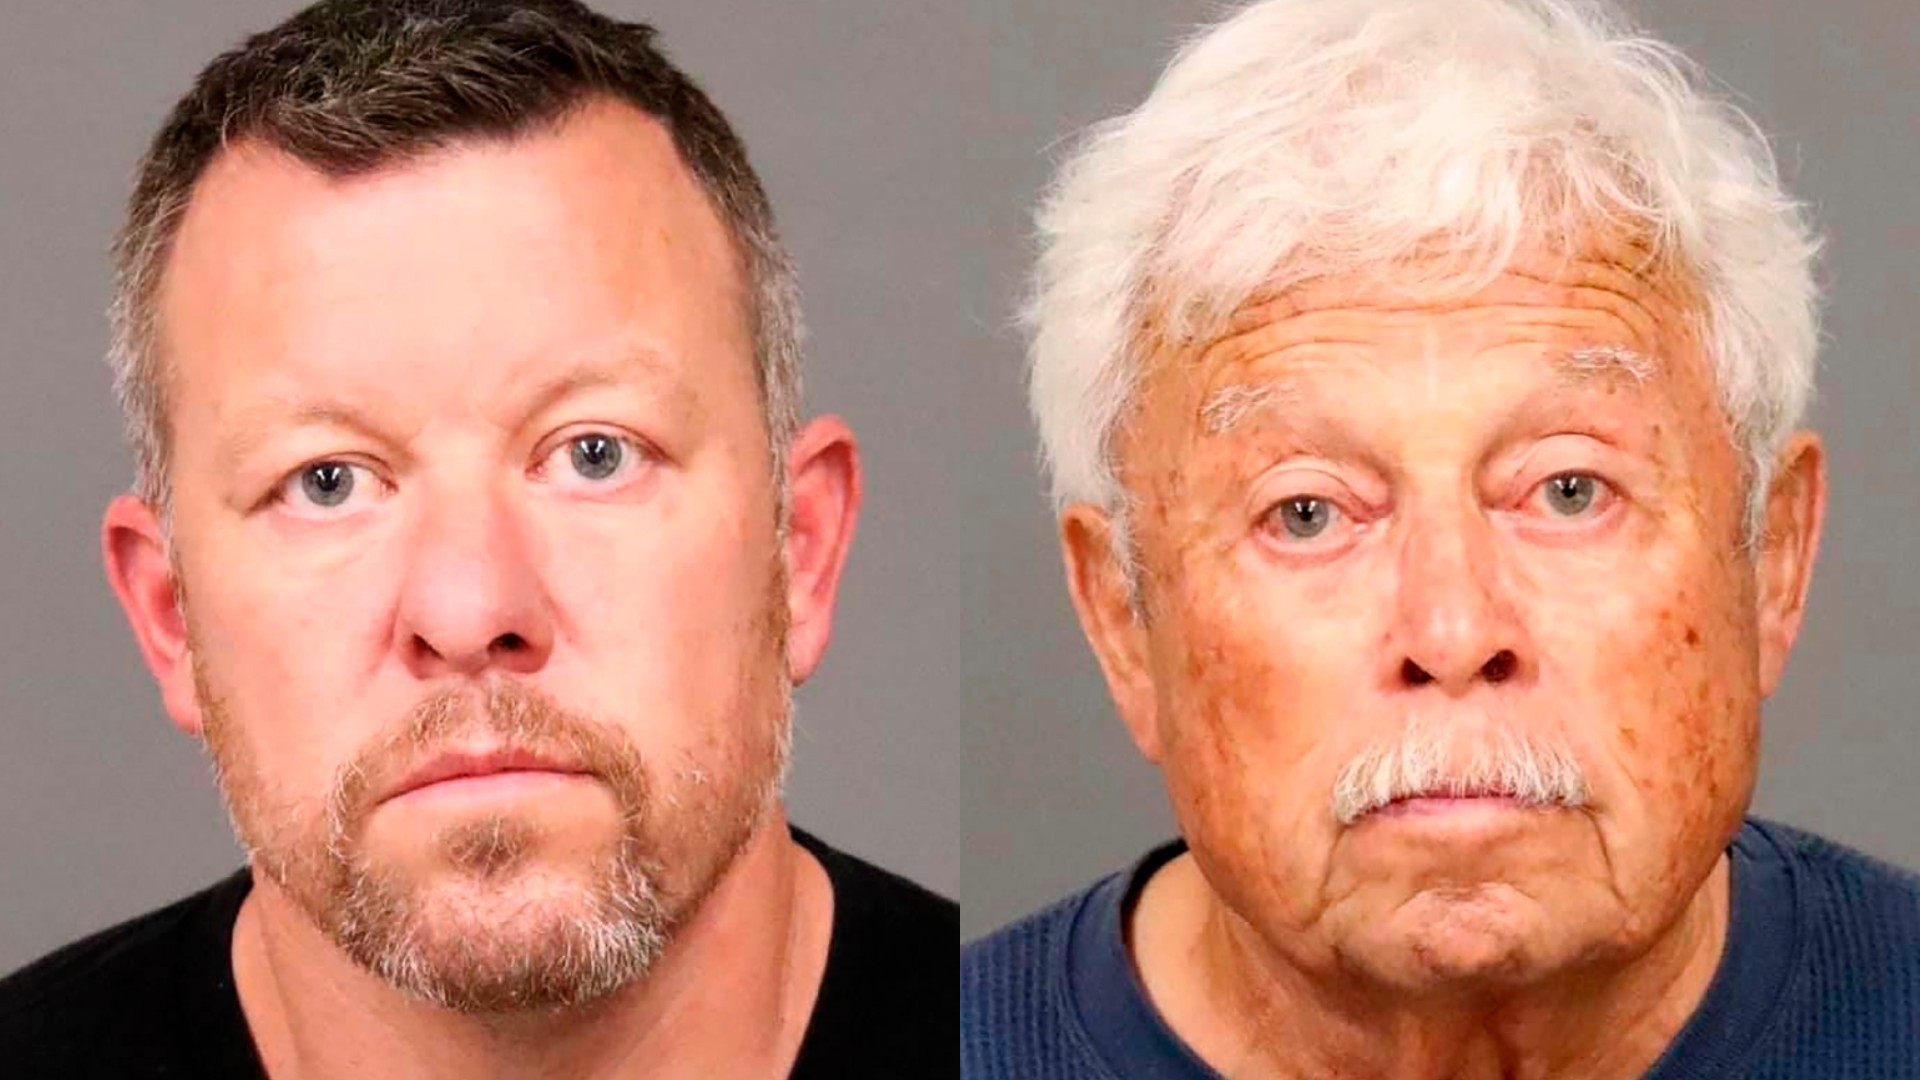 Paul Flores, left, and Ruben Flores, right, are seen in booking photos released by the San Luis Obispo County Sheriff's Office.